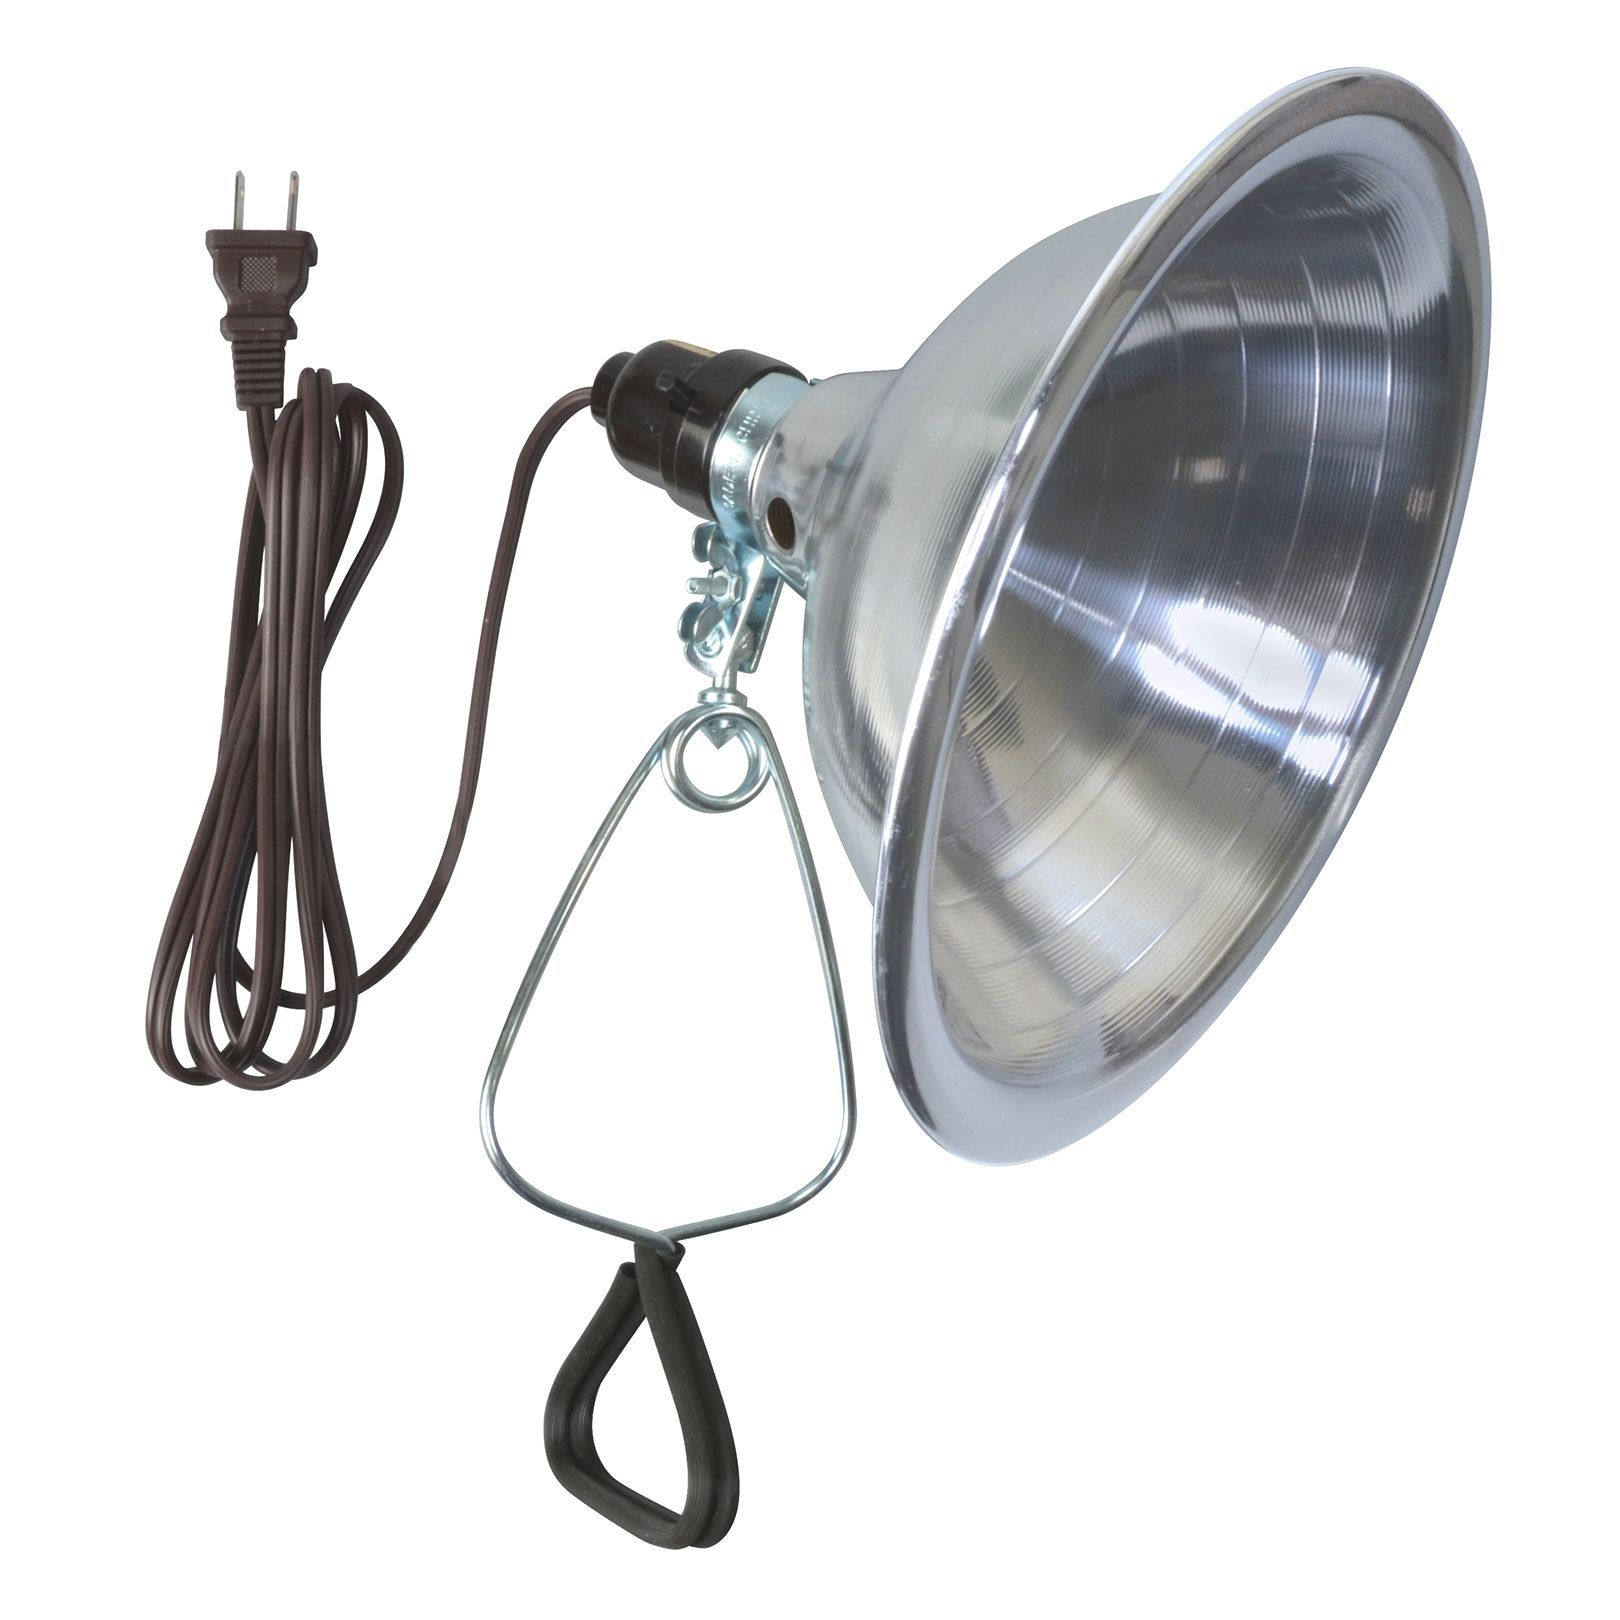 Online Shopping Bedding Furniture Electronics Jewelry Clothing More Clamp Lamp Work Lights Lamp Light